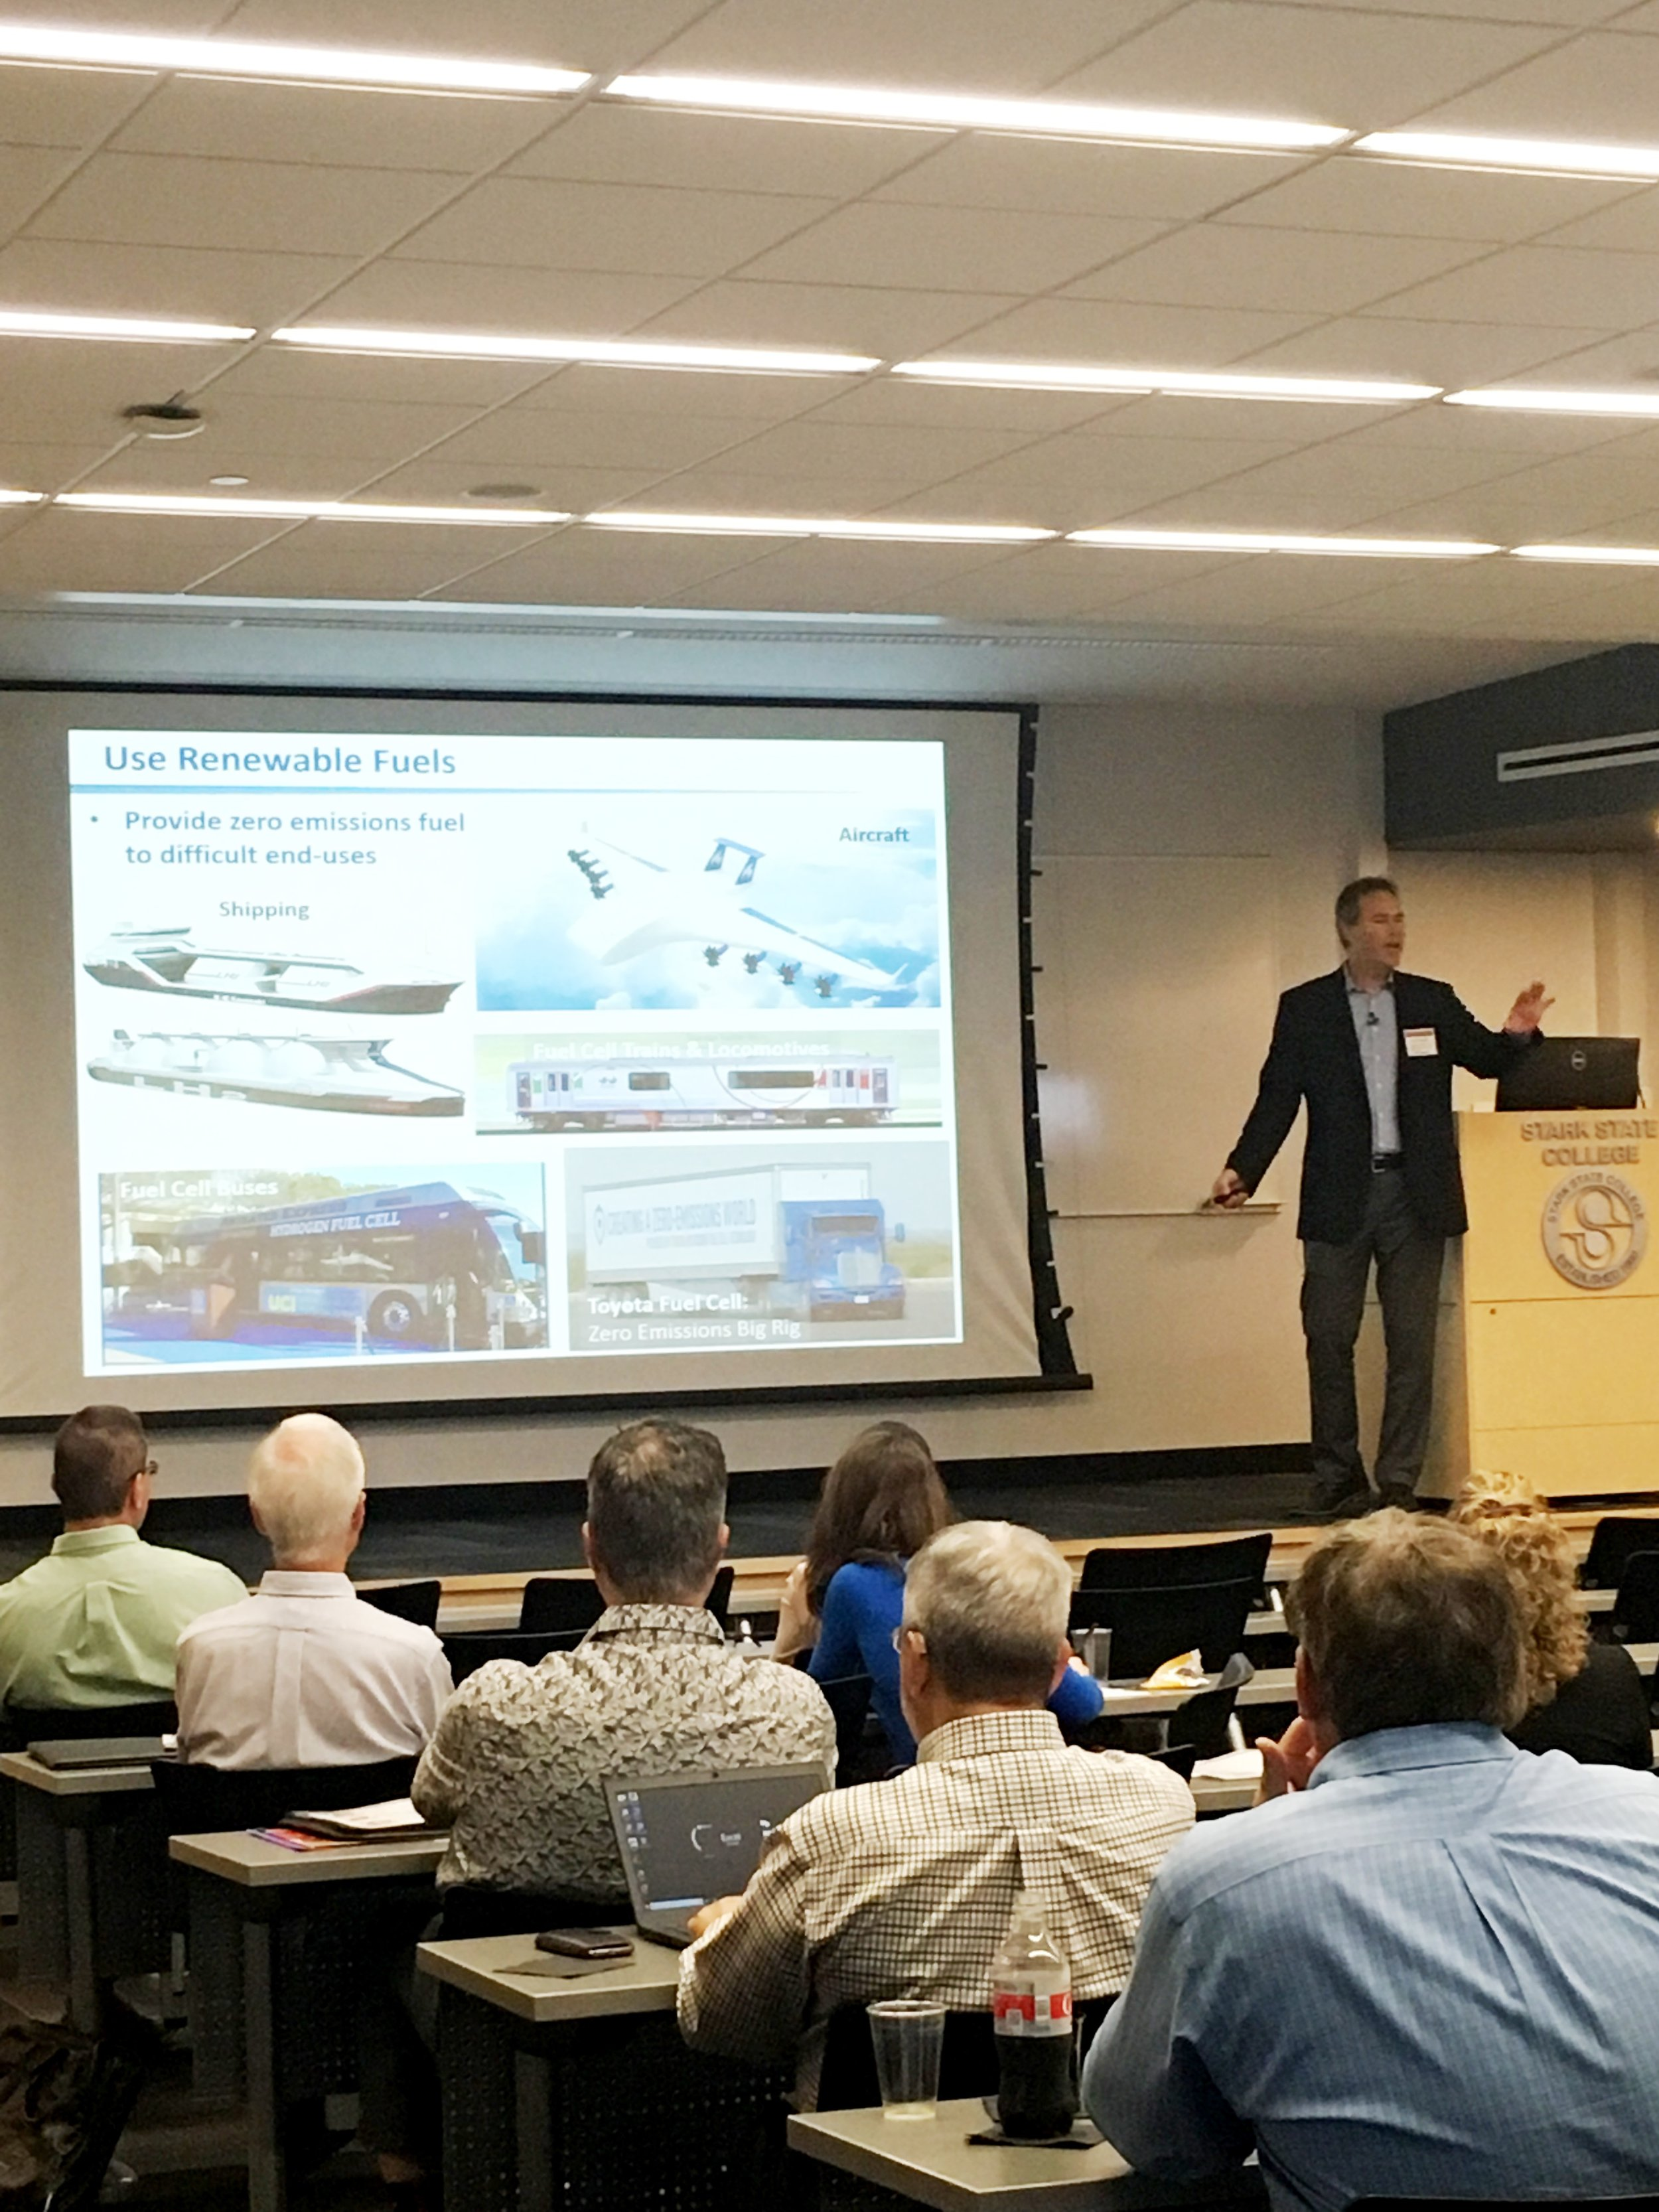 Jack Brouwer, National Fuel Cell Research Center